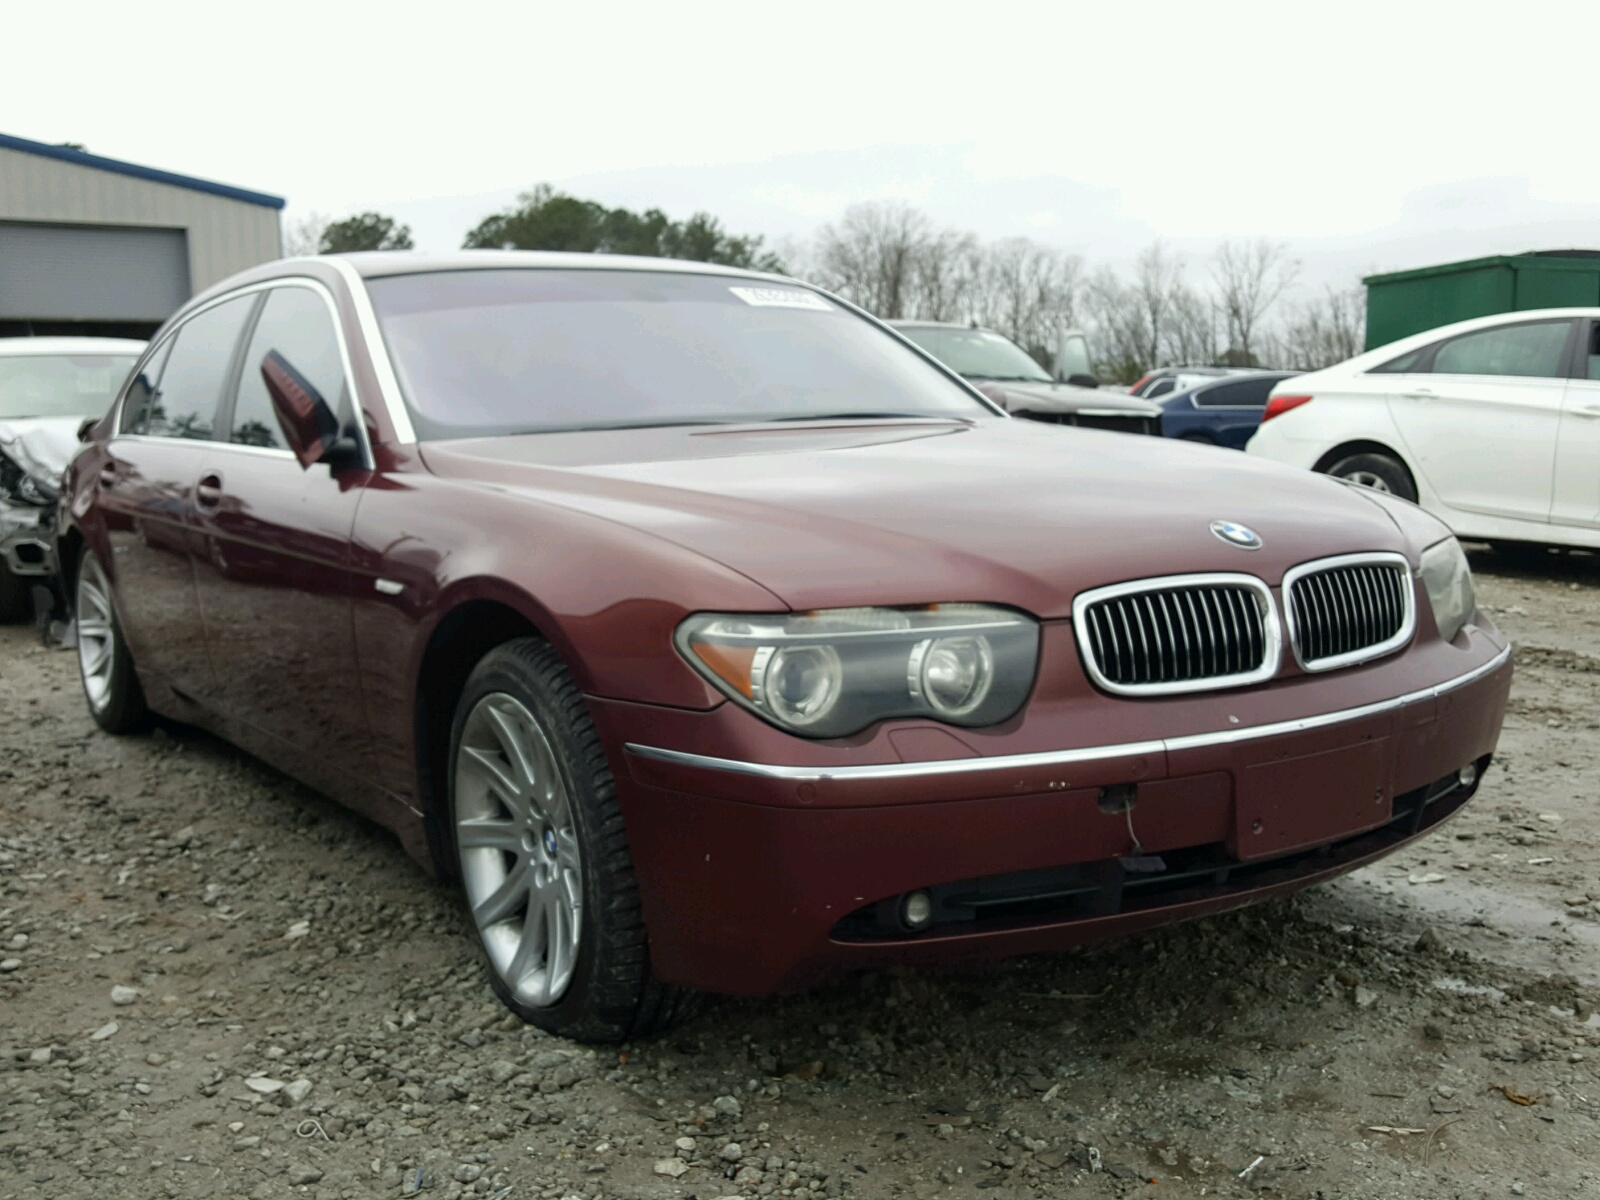 Auto Auction Ended On VIN WBAPNA BMW D In AB - 2009 bmw 745